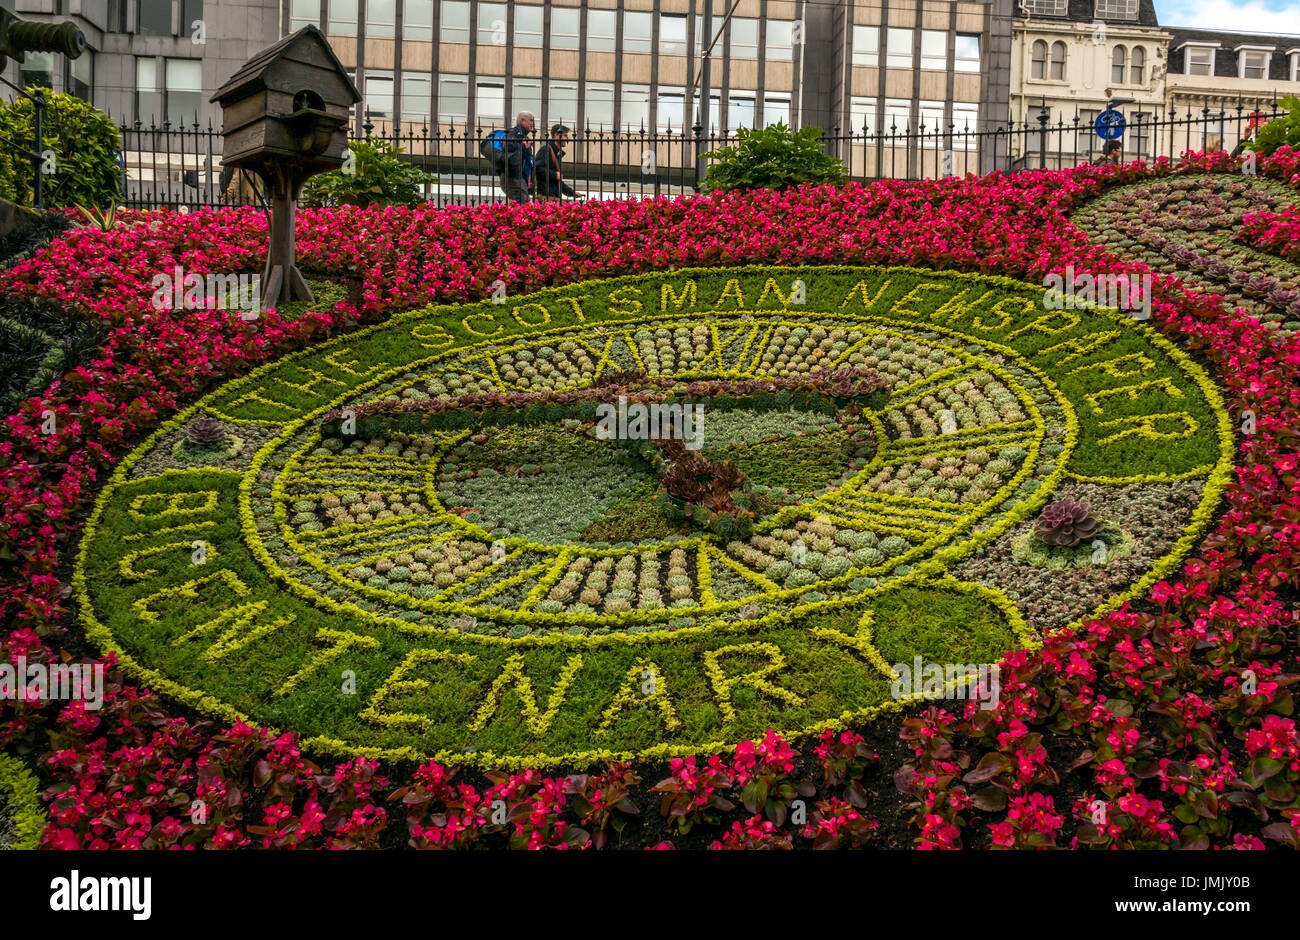 Edinburgh's city centre floral clock, oldest working clock in the world recreated each year, in 2017 commemorating bicentennial of Scotsman newspaper - Stock Image